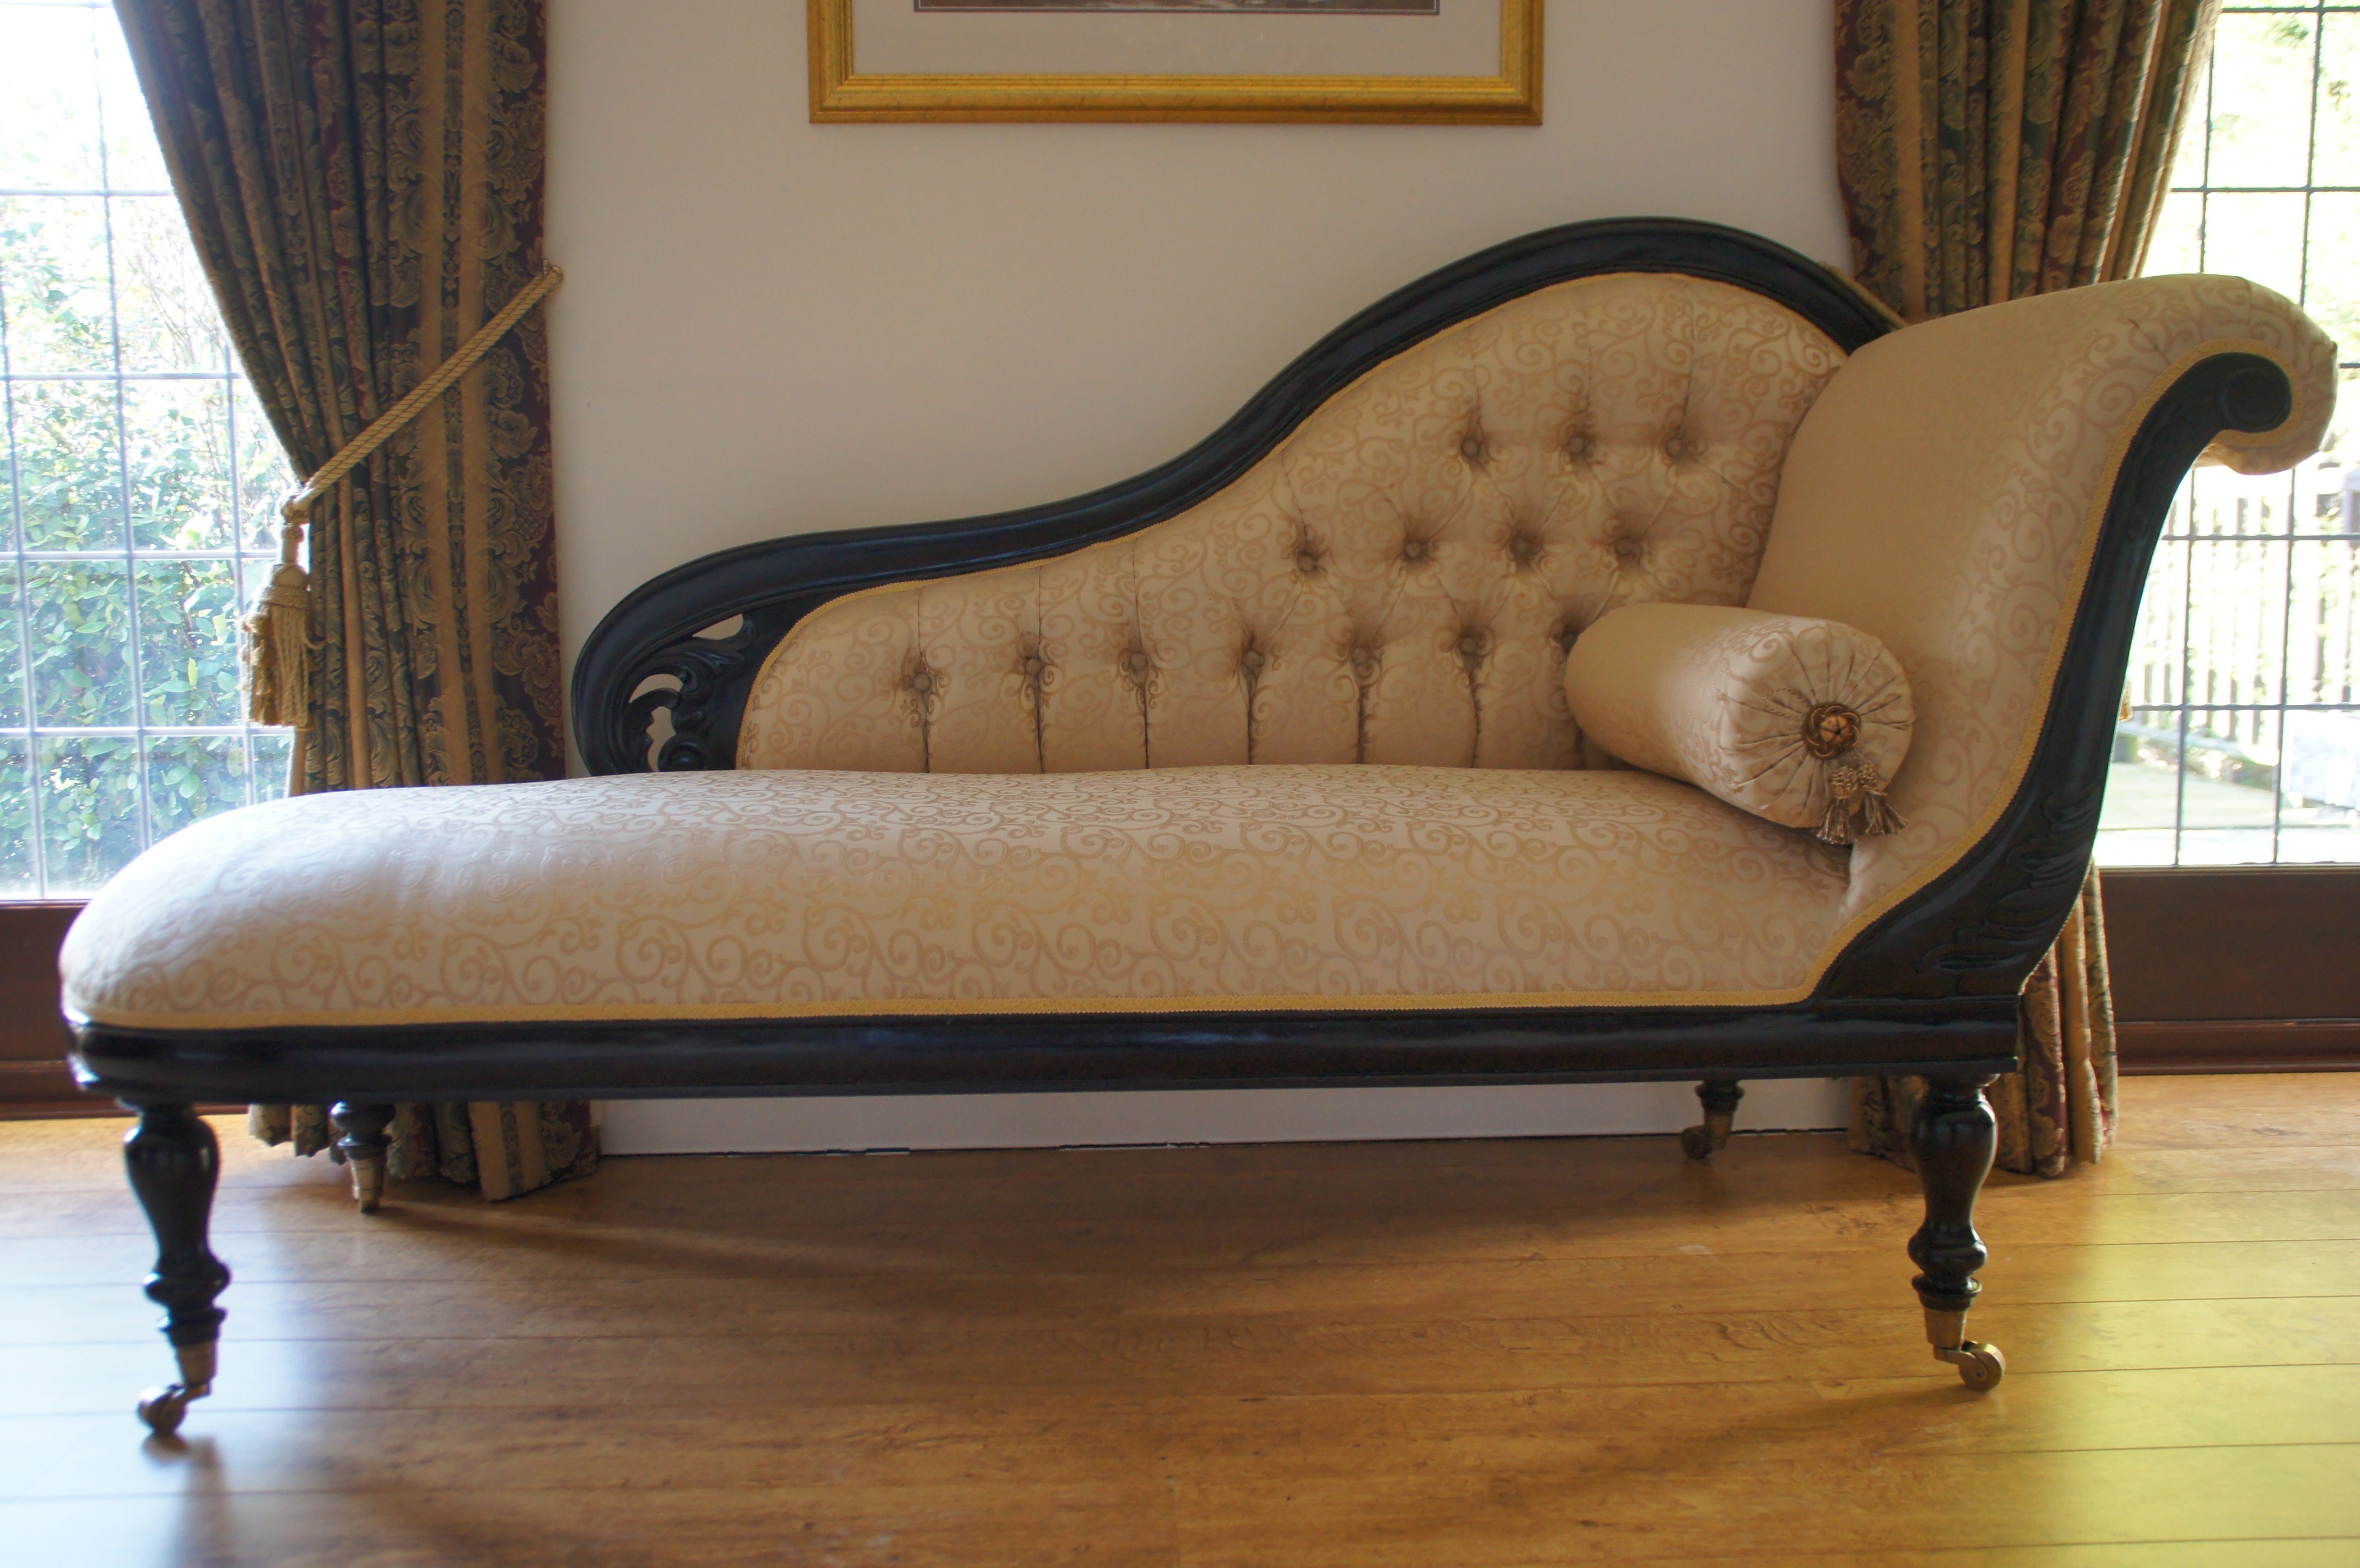 Well Known Victorian Chaise Lounge Chairs Regarding Vintage White Leather Victorian Chaise Lounge Sofa With Black (View 15 of 15)